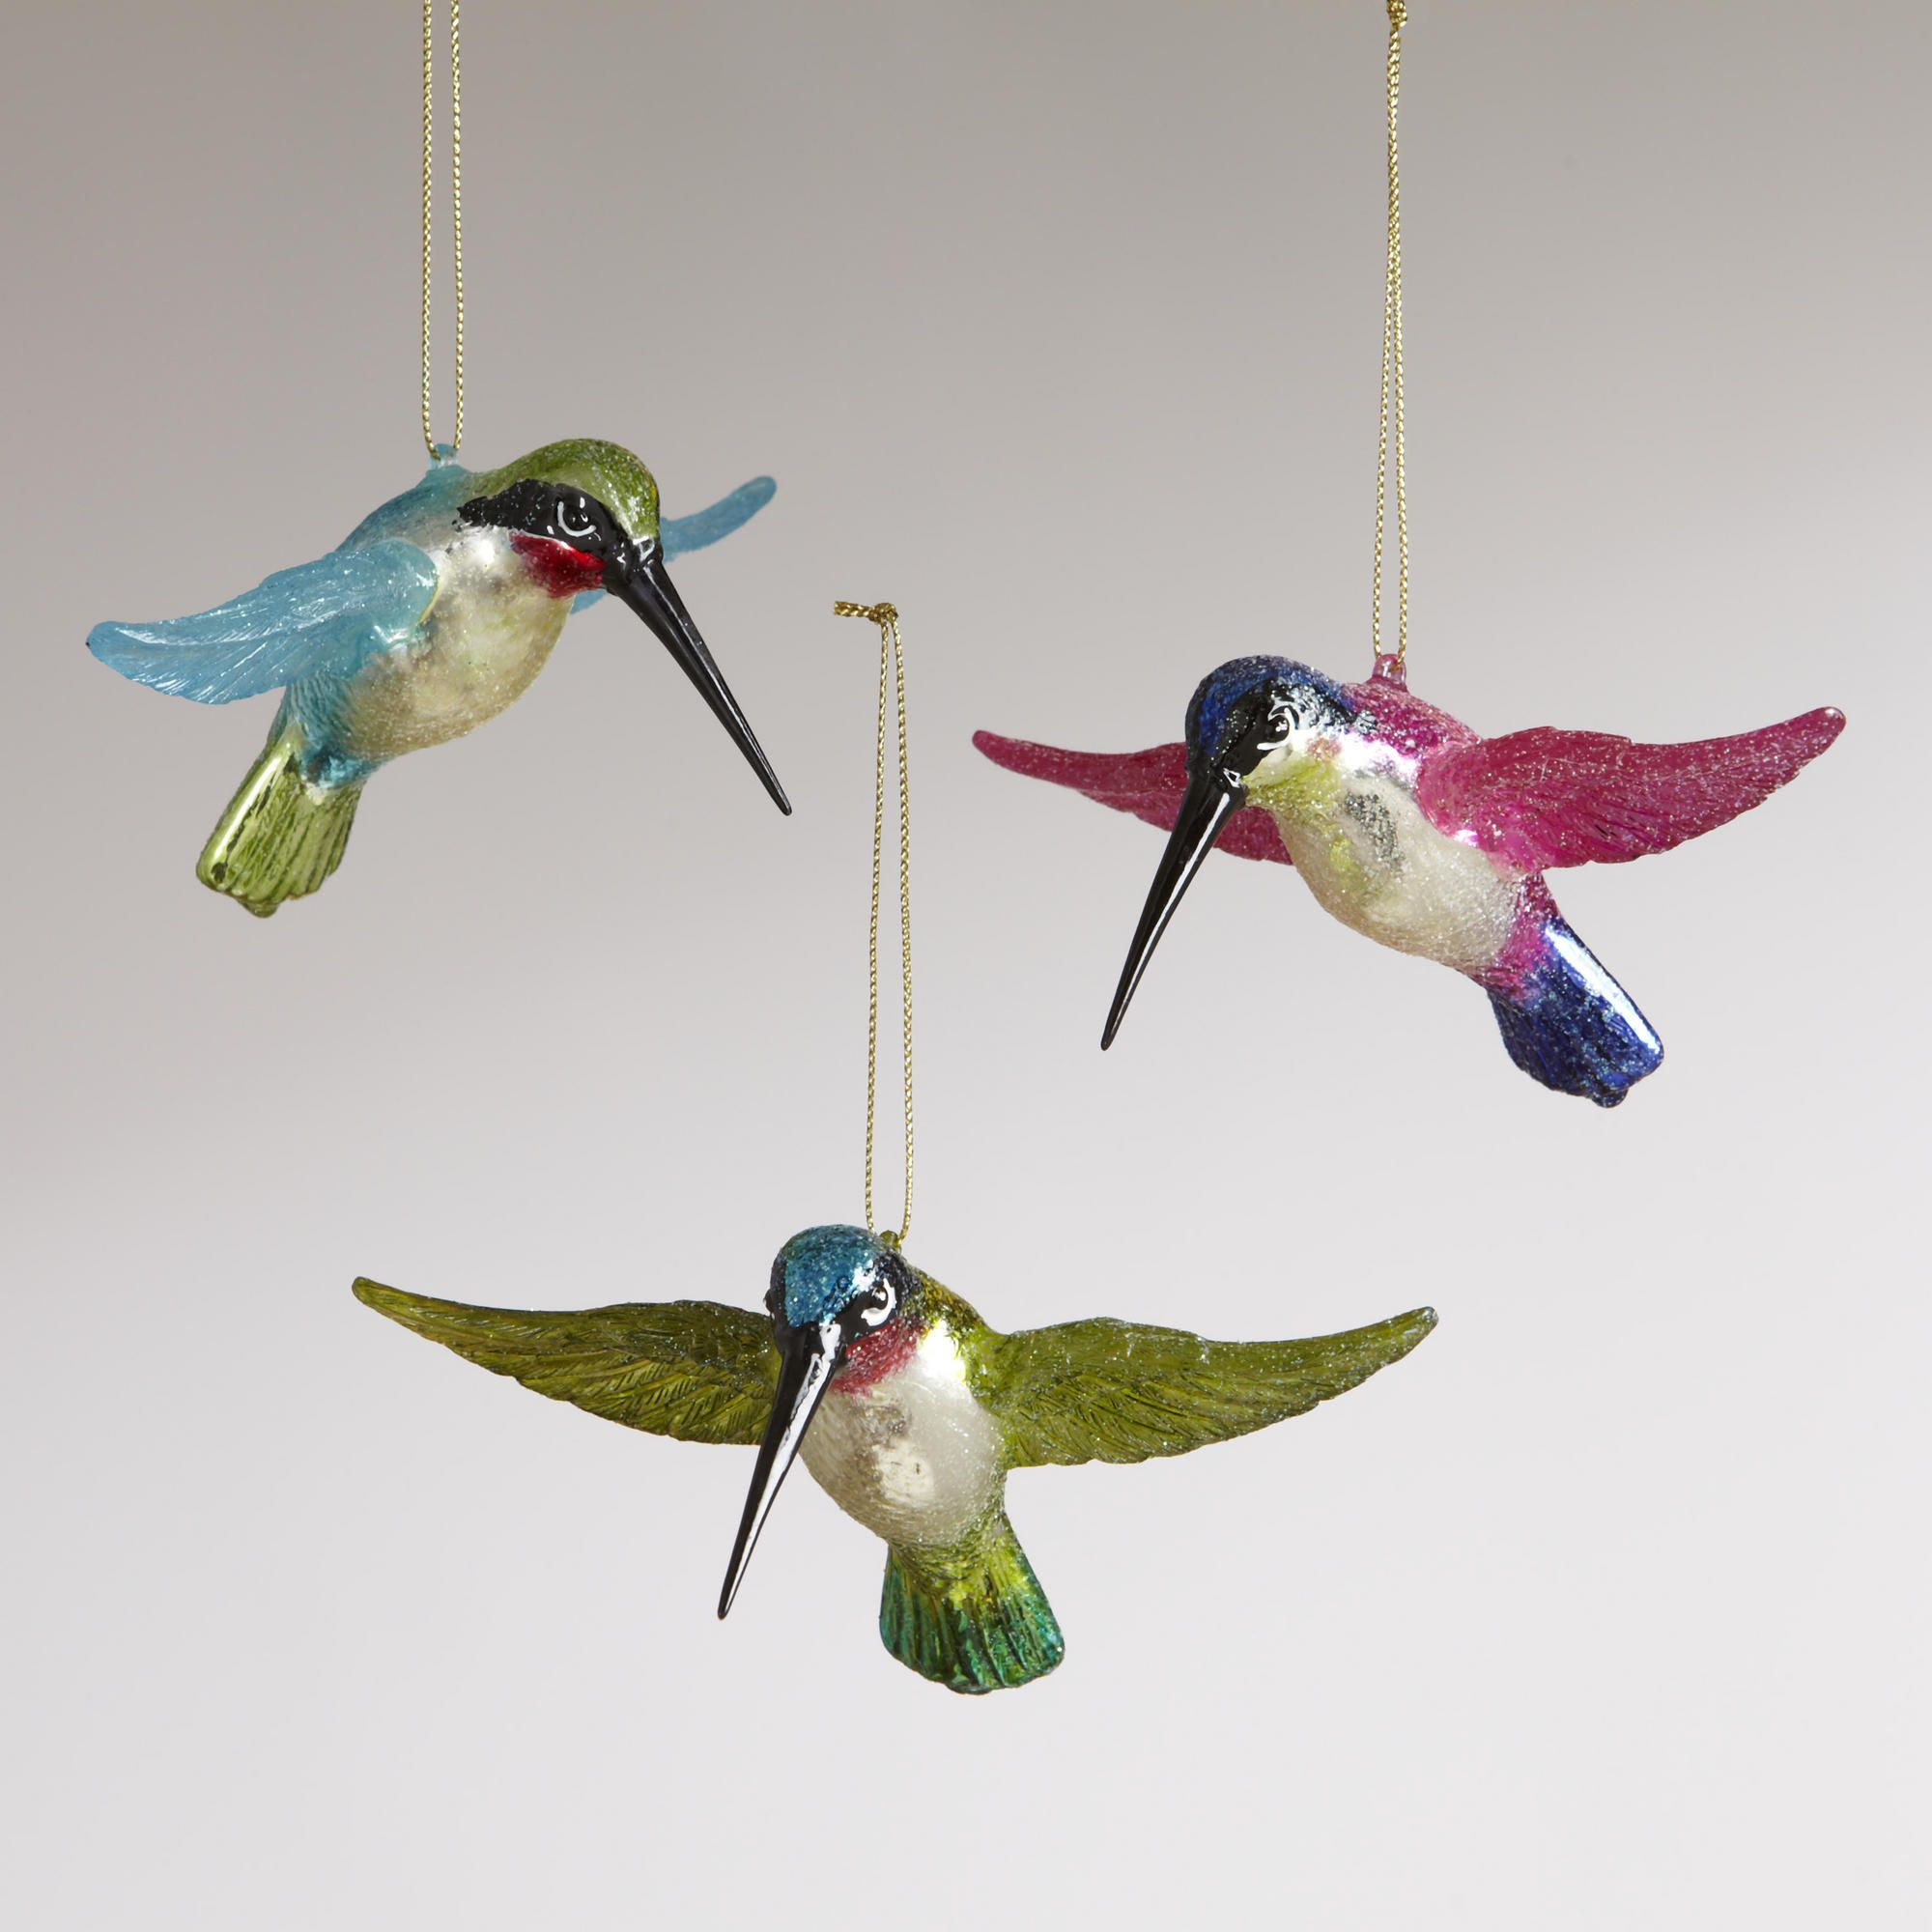 Glass animal ornaments - Flying Hummingbird Ornaments Set Of 3